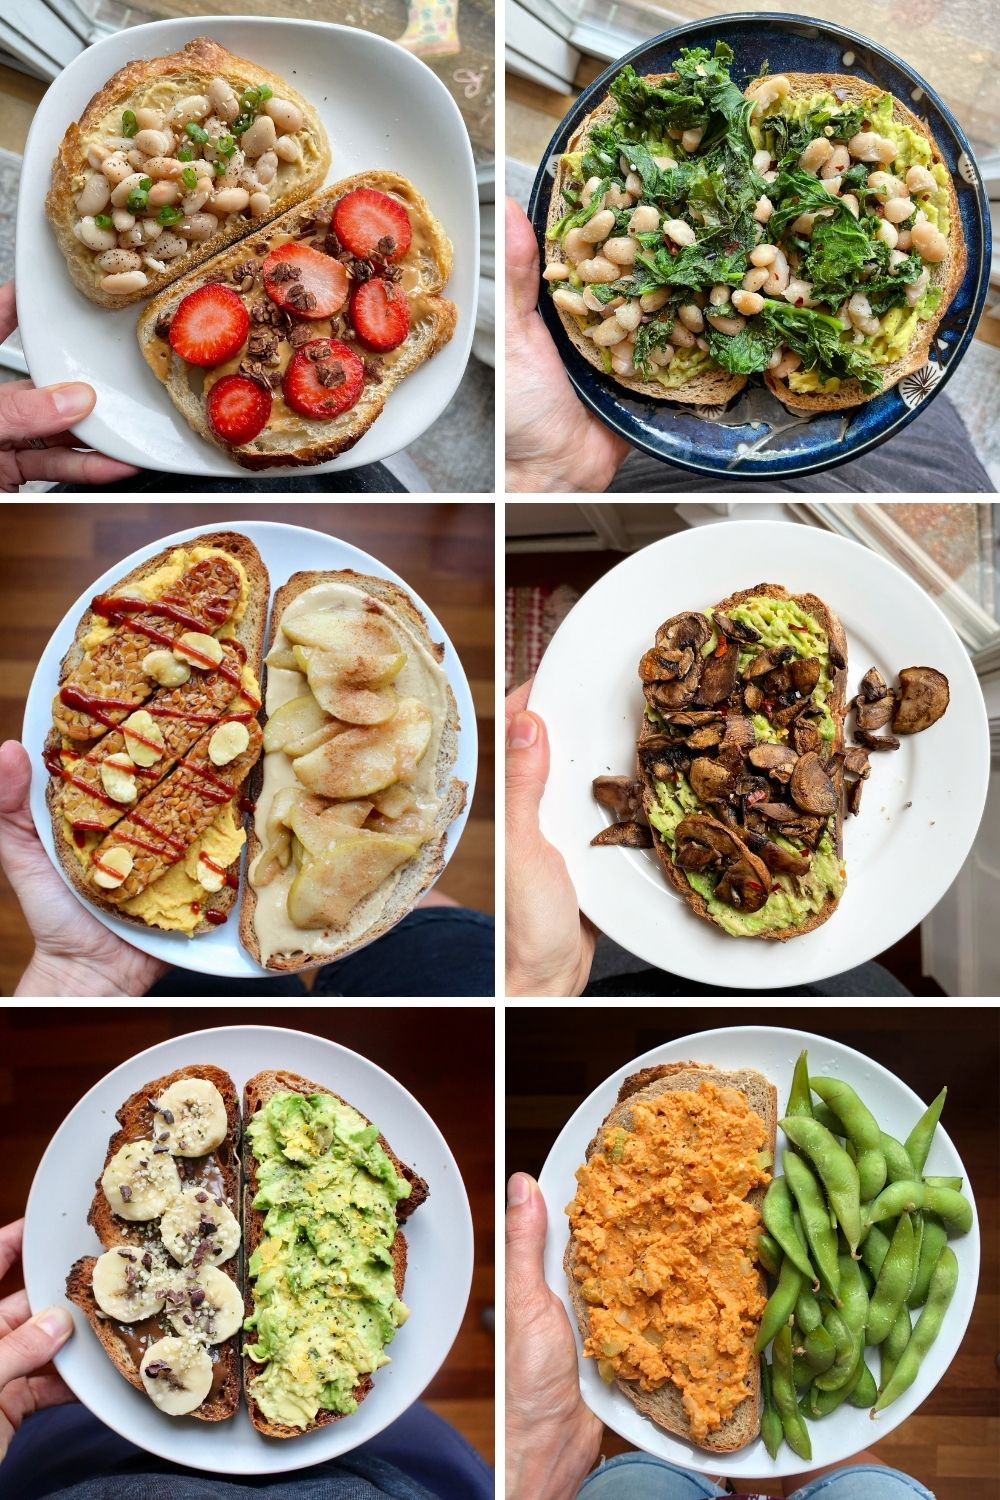 a collage of creative plant-based toast ideas